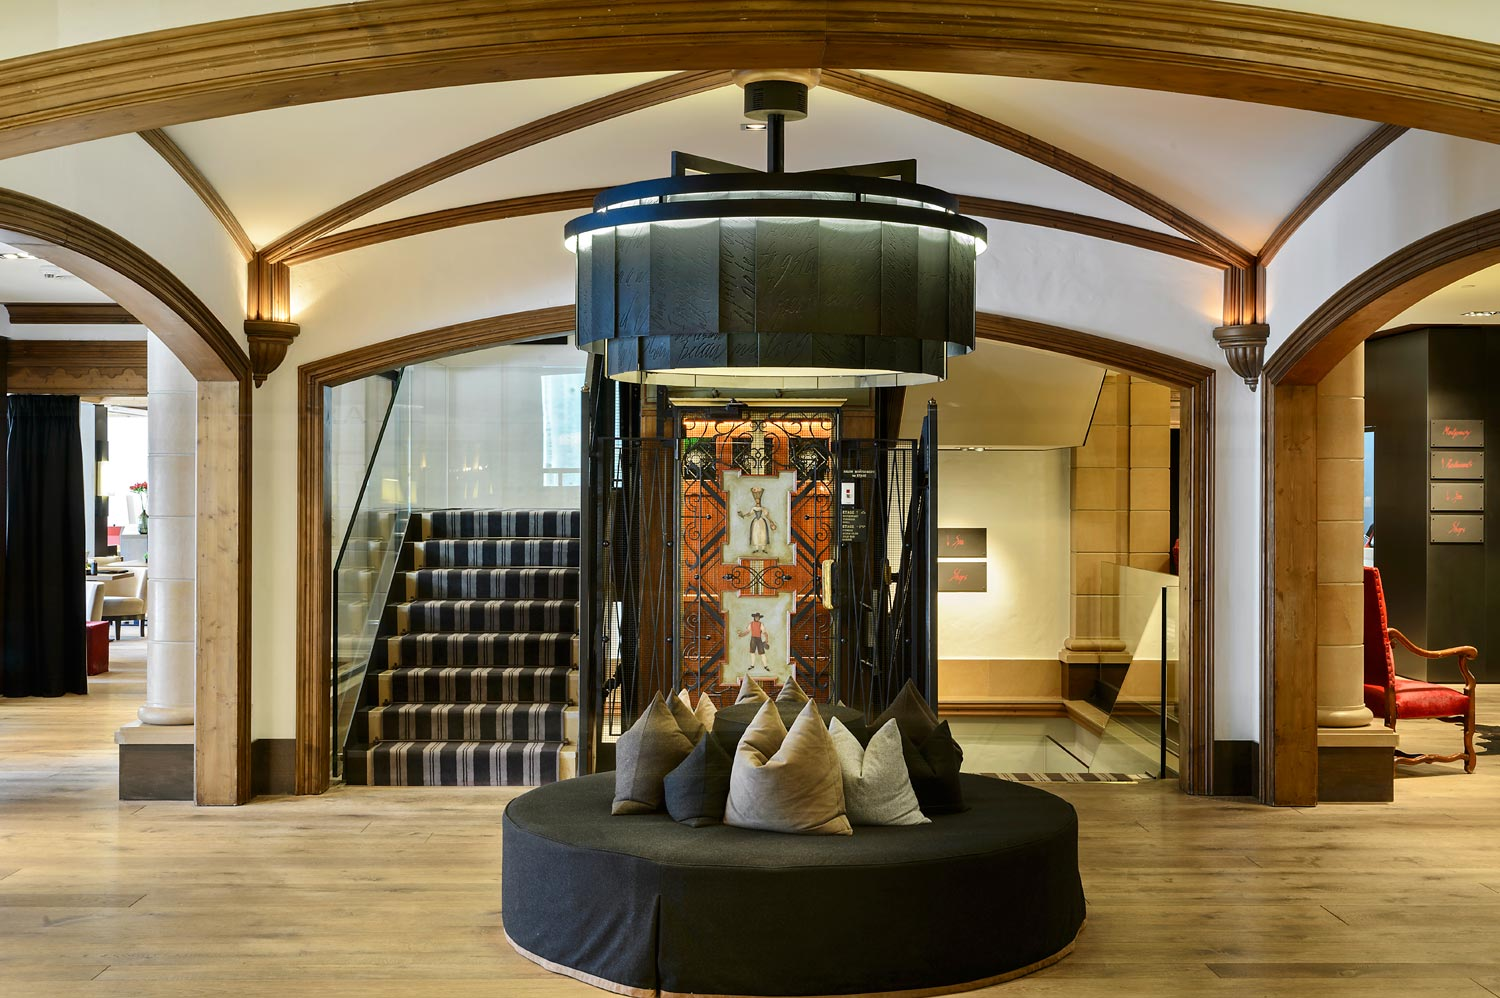 We Review Park Gstaad Hotel - 'The Last Paradise in a Crazy World' 9